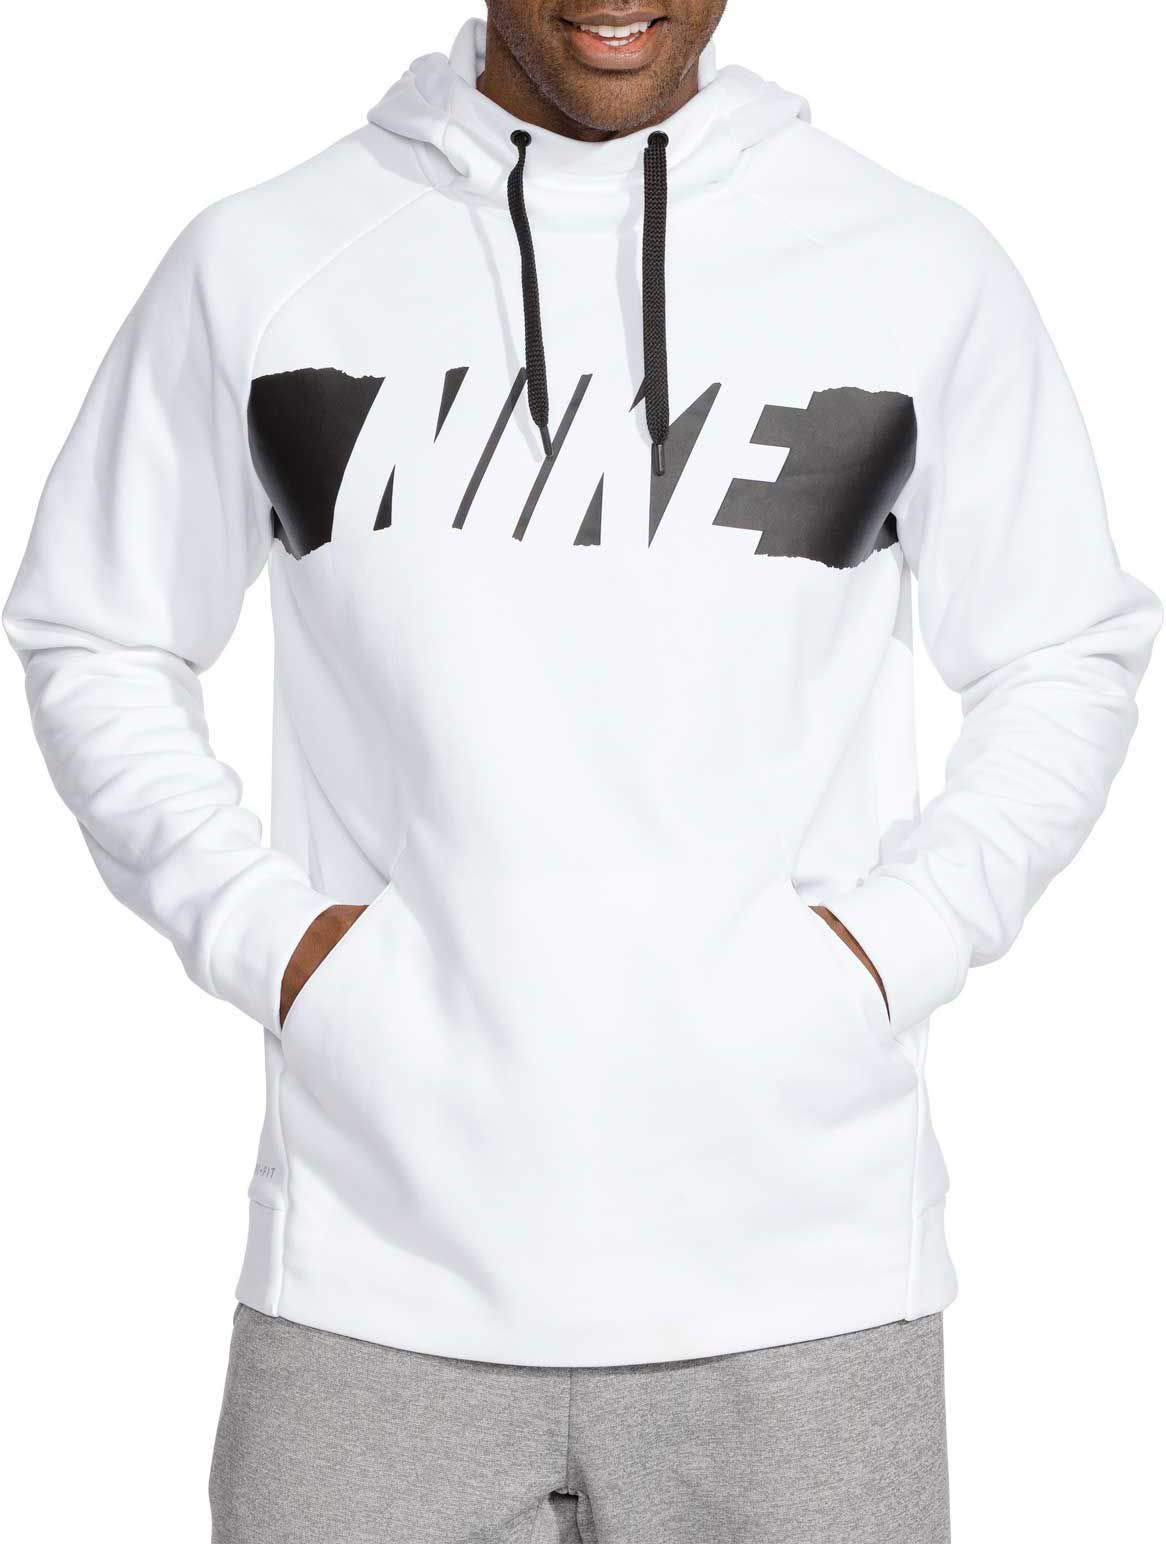 NIKE Men's Therma Graphic Training Hoodie (White/Black, Large)